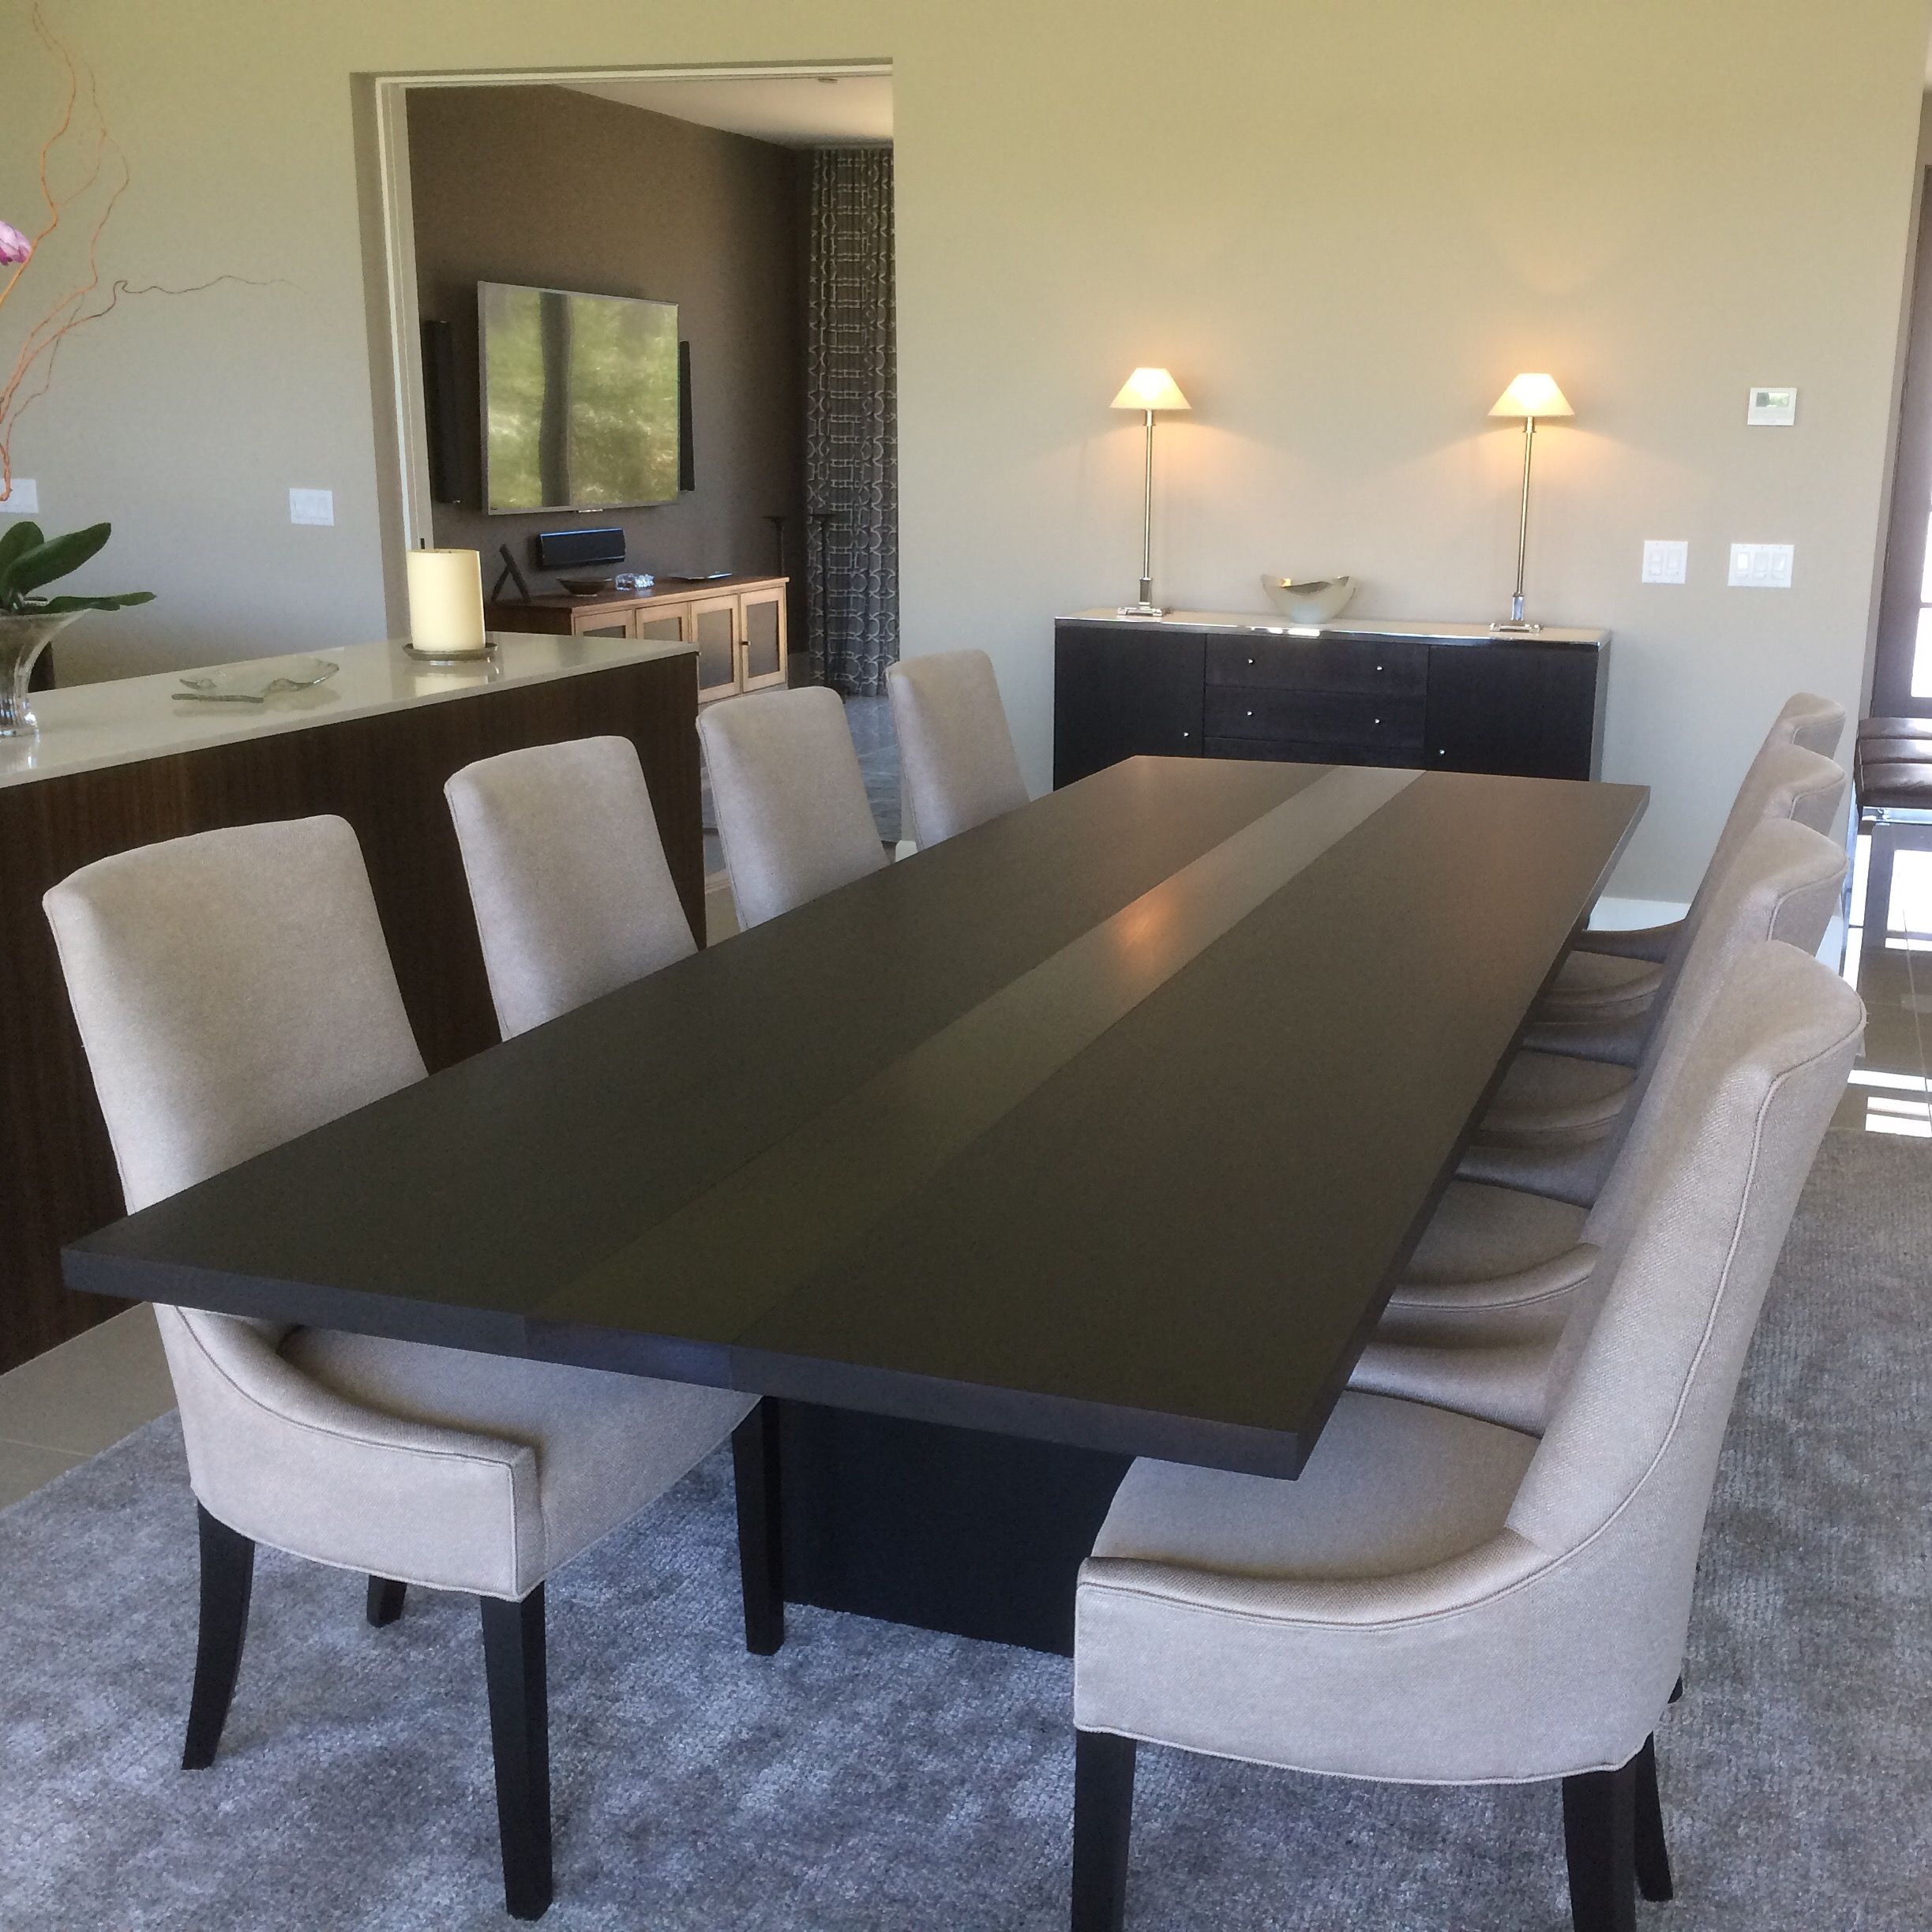 Handmade modern dining table by bedre woodworking for Modern dining table